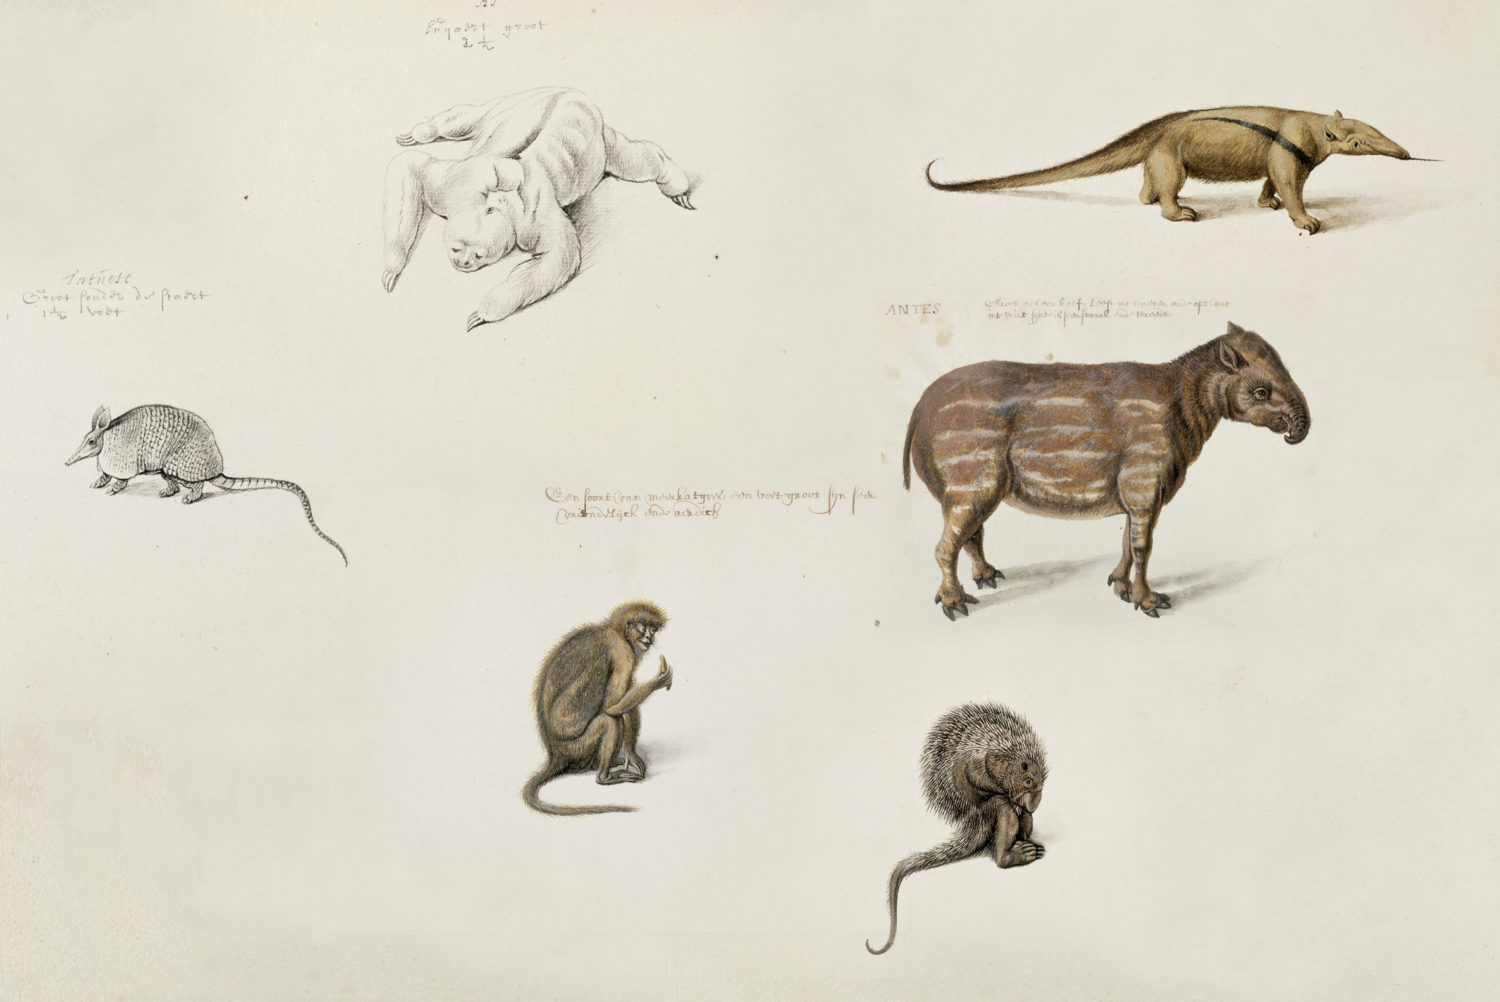 Brazilian animal drawings by Frans Post